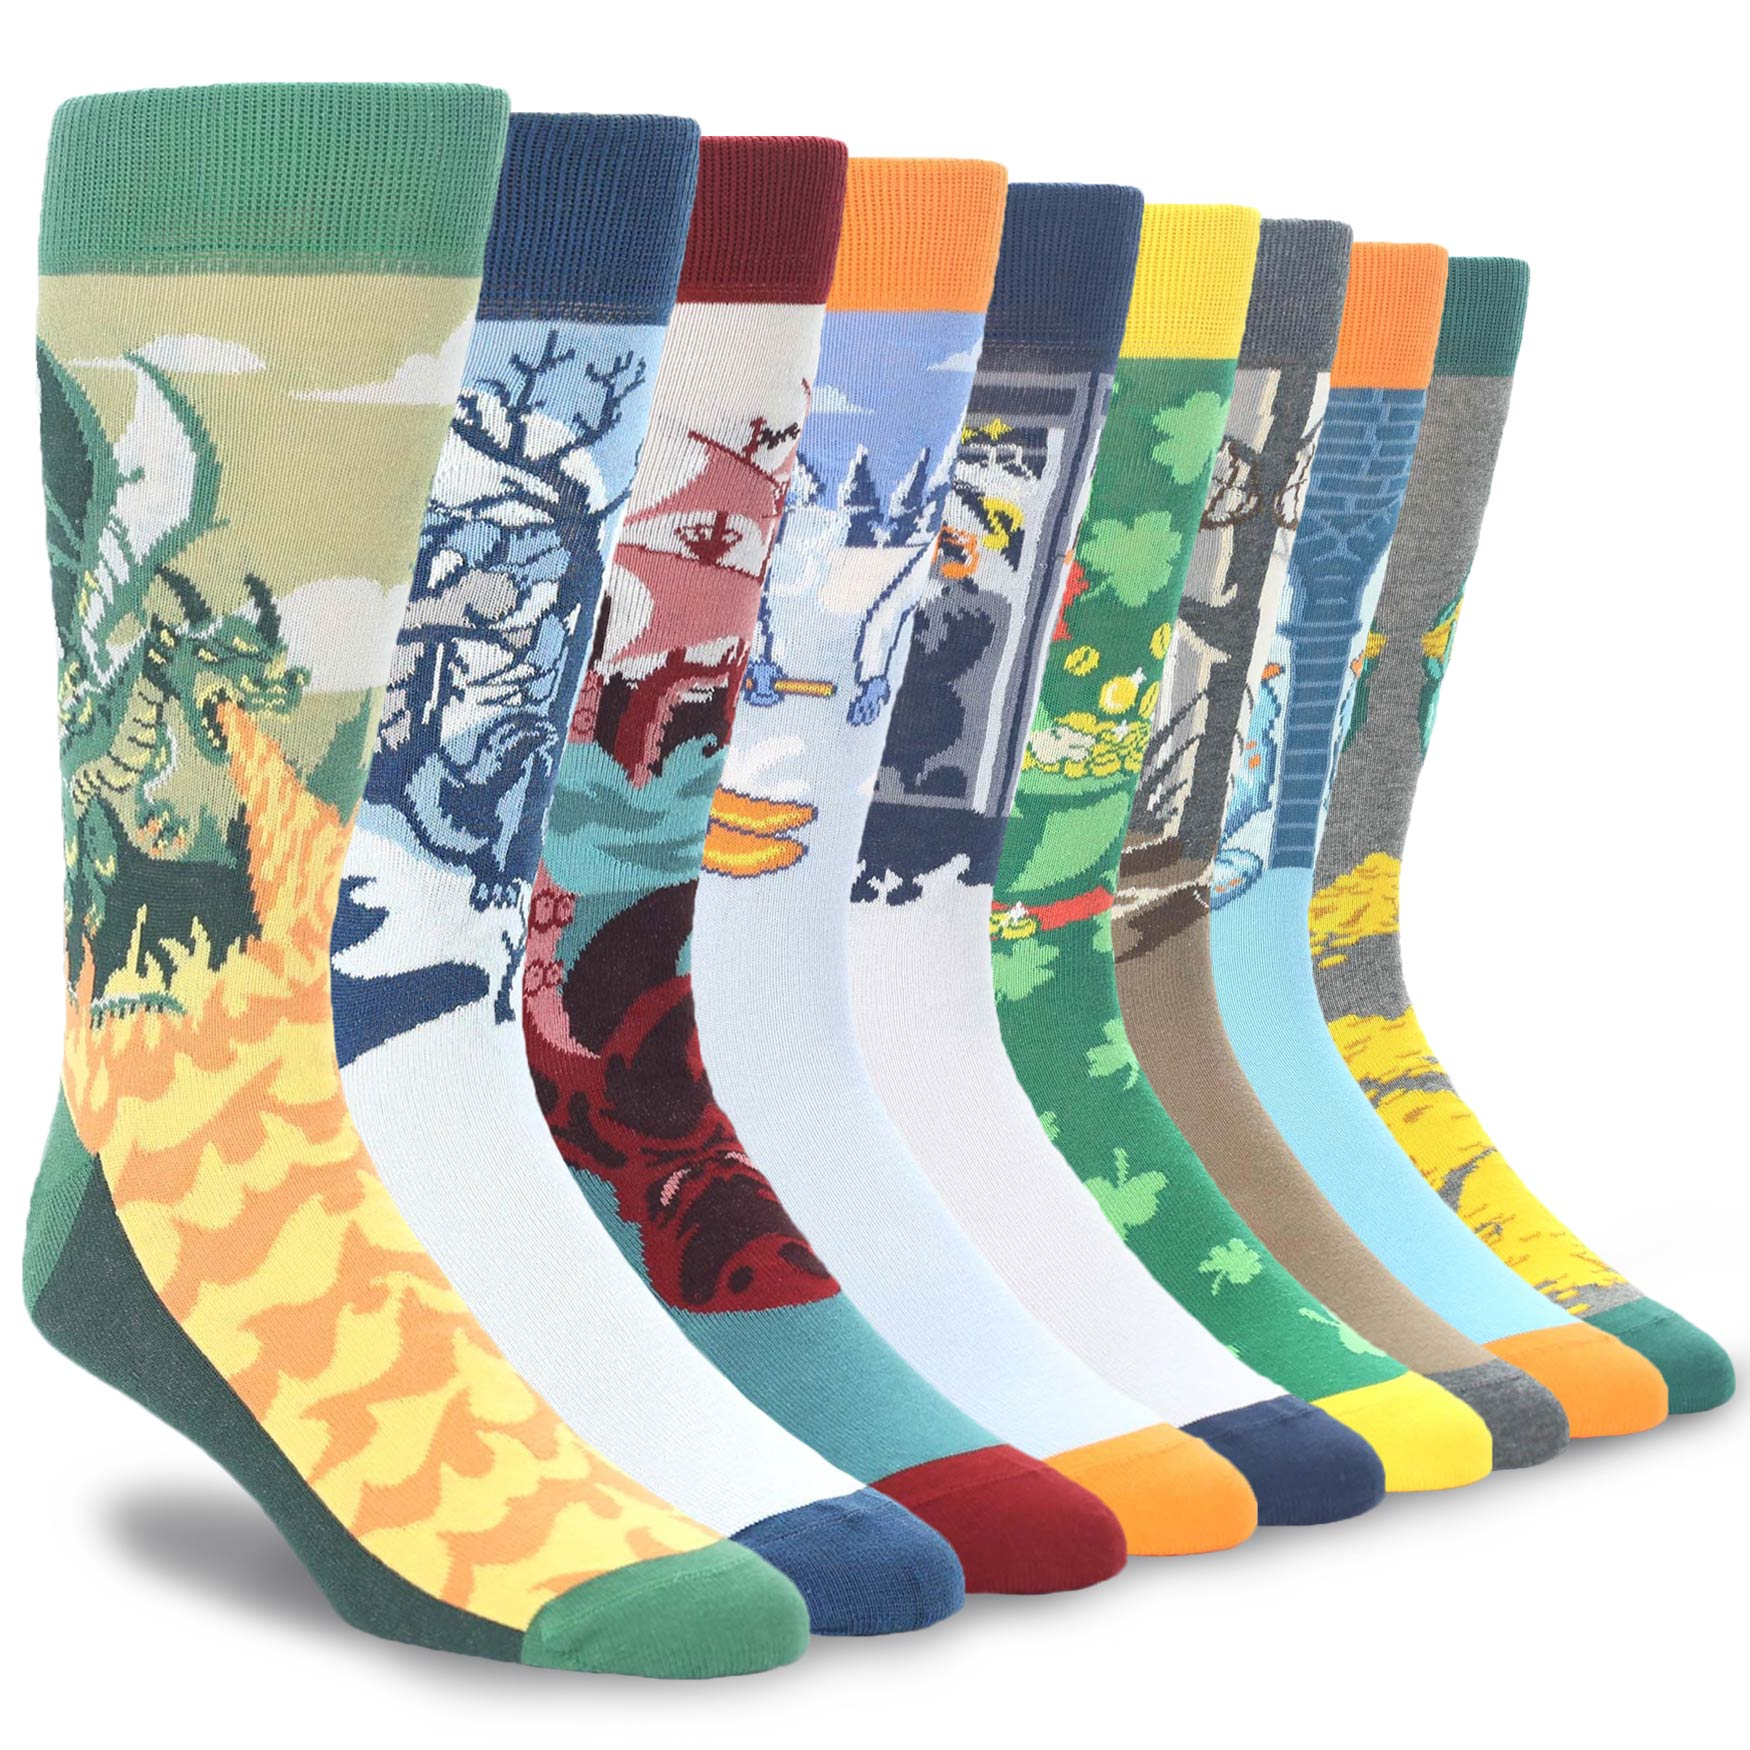 Example of Men's Mythical Creature Dress Socks from boldSOCKS